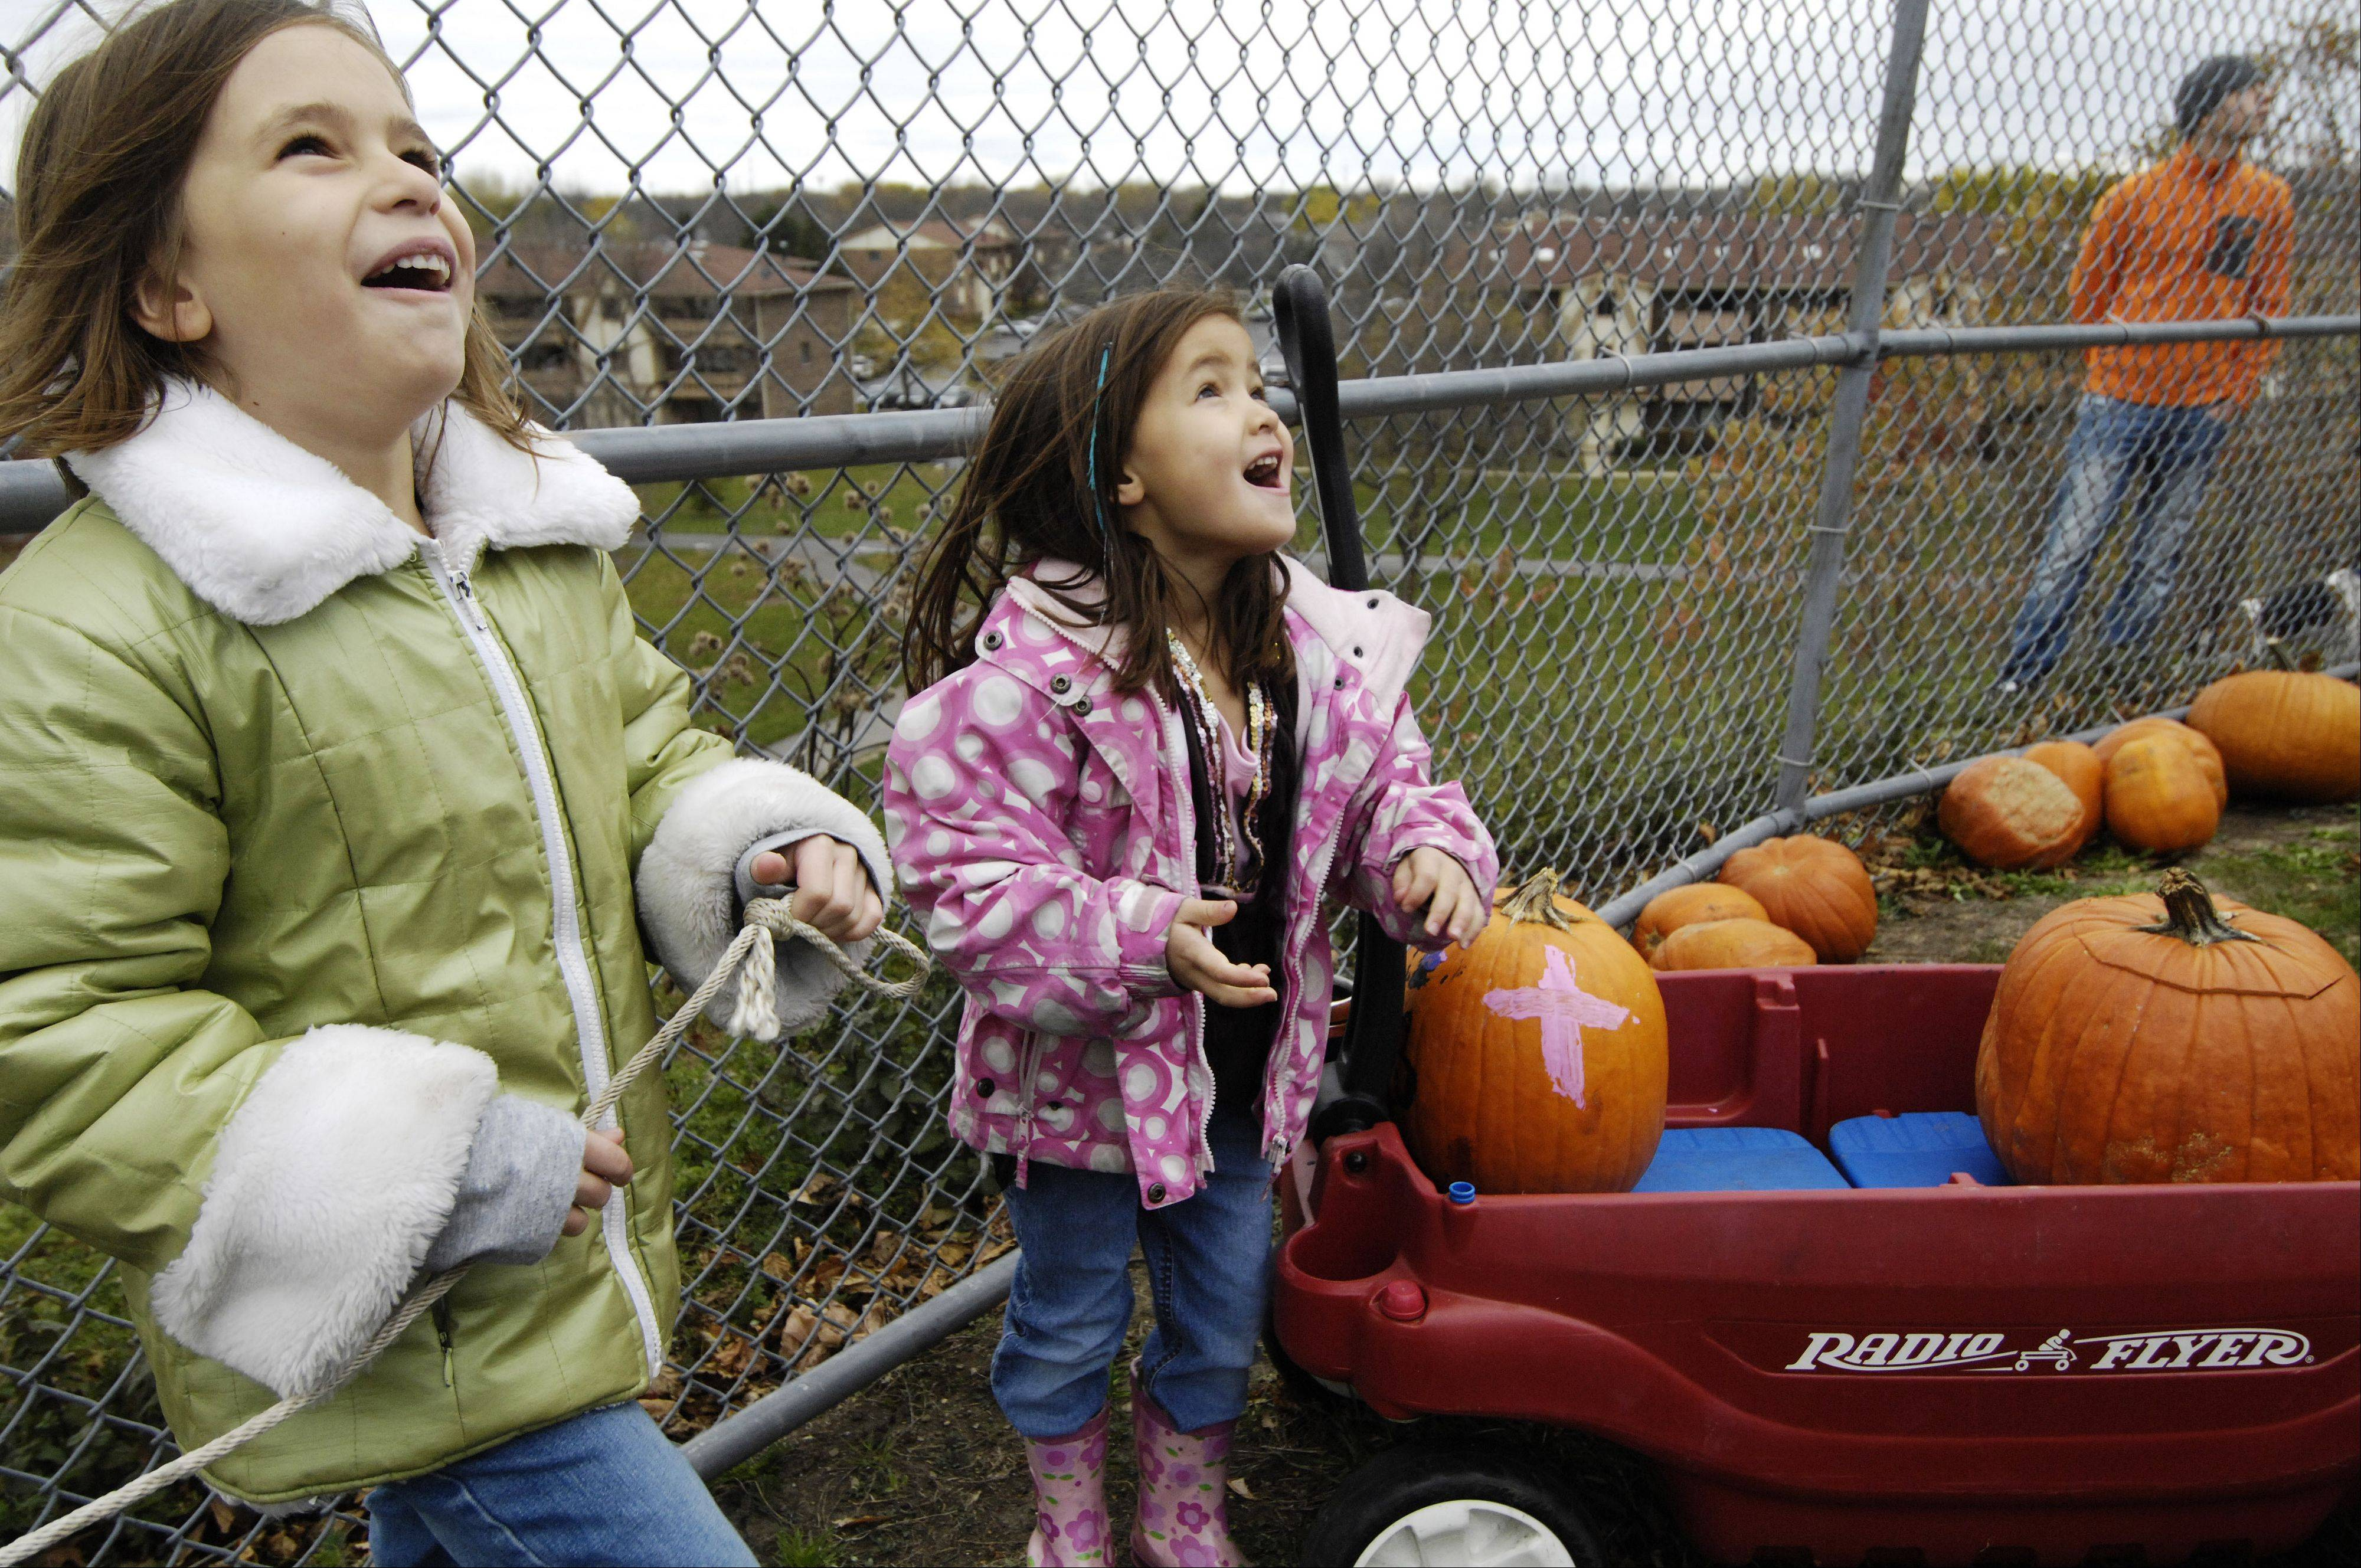 Olivia Lehocky, 6, left, and Olivia Tran, 5, both of Vernon Hills, watch the flight of their pumpkin, which they launched using a trebuchet, during the Vernon Hills Park District Pumpkin Launch at the Century Park North sled hill Saturday.